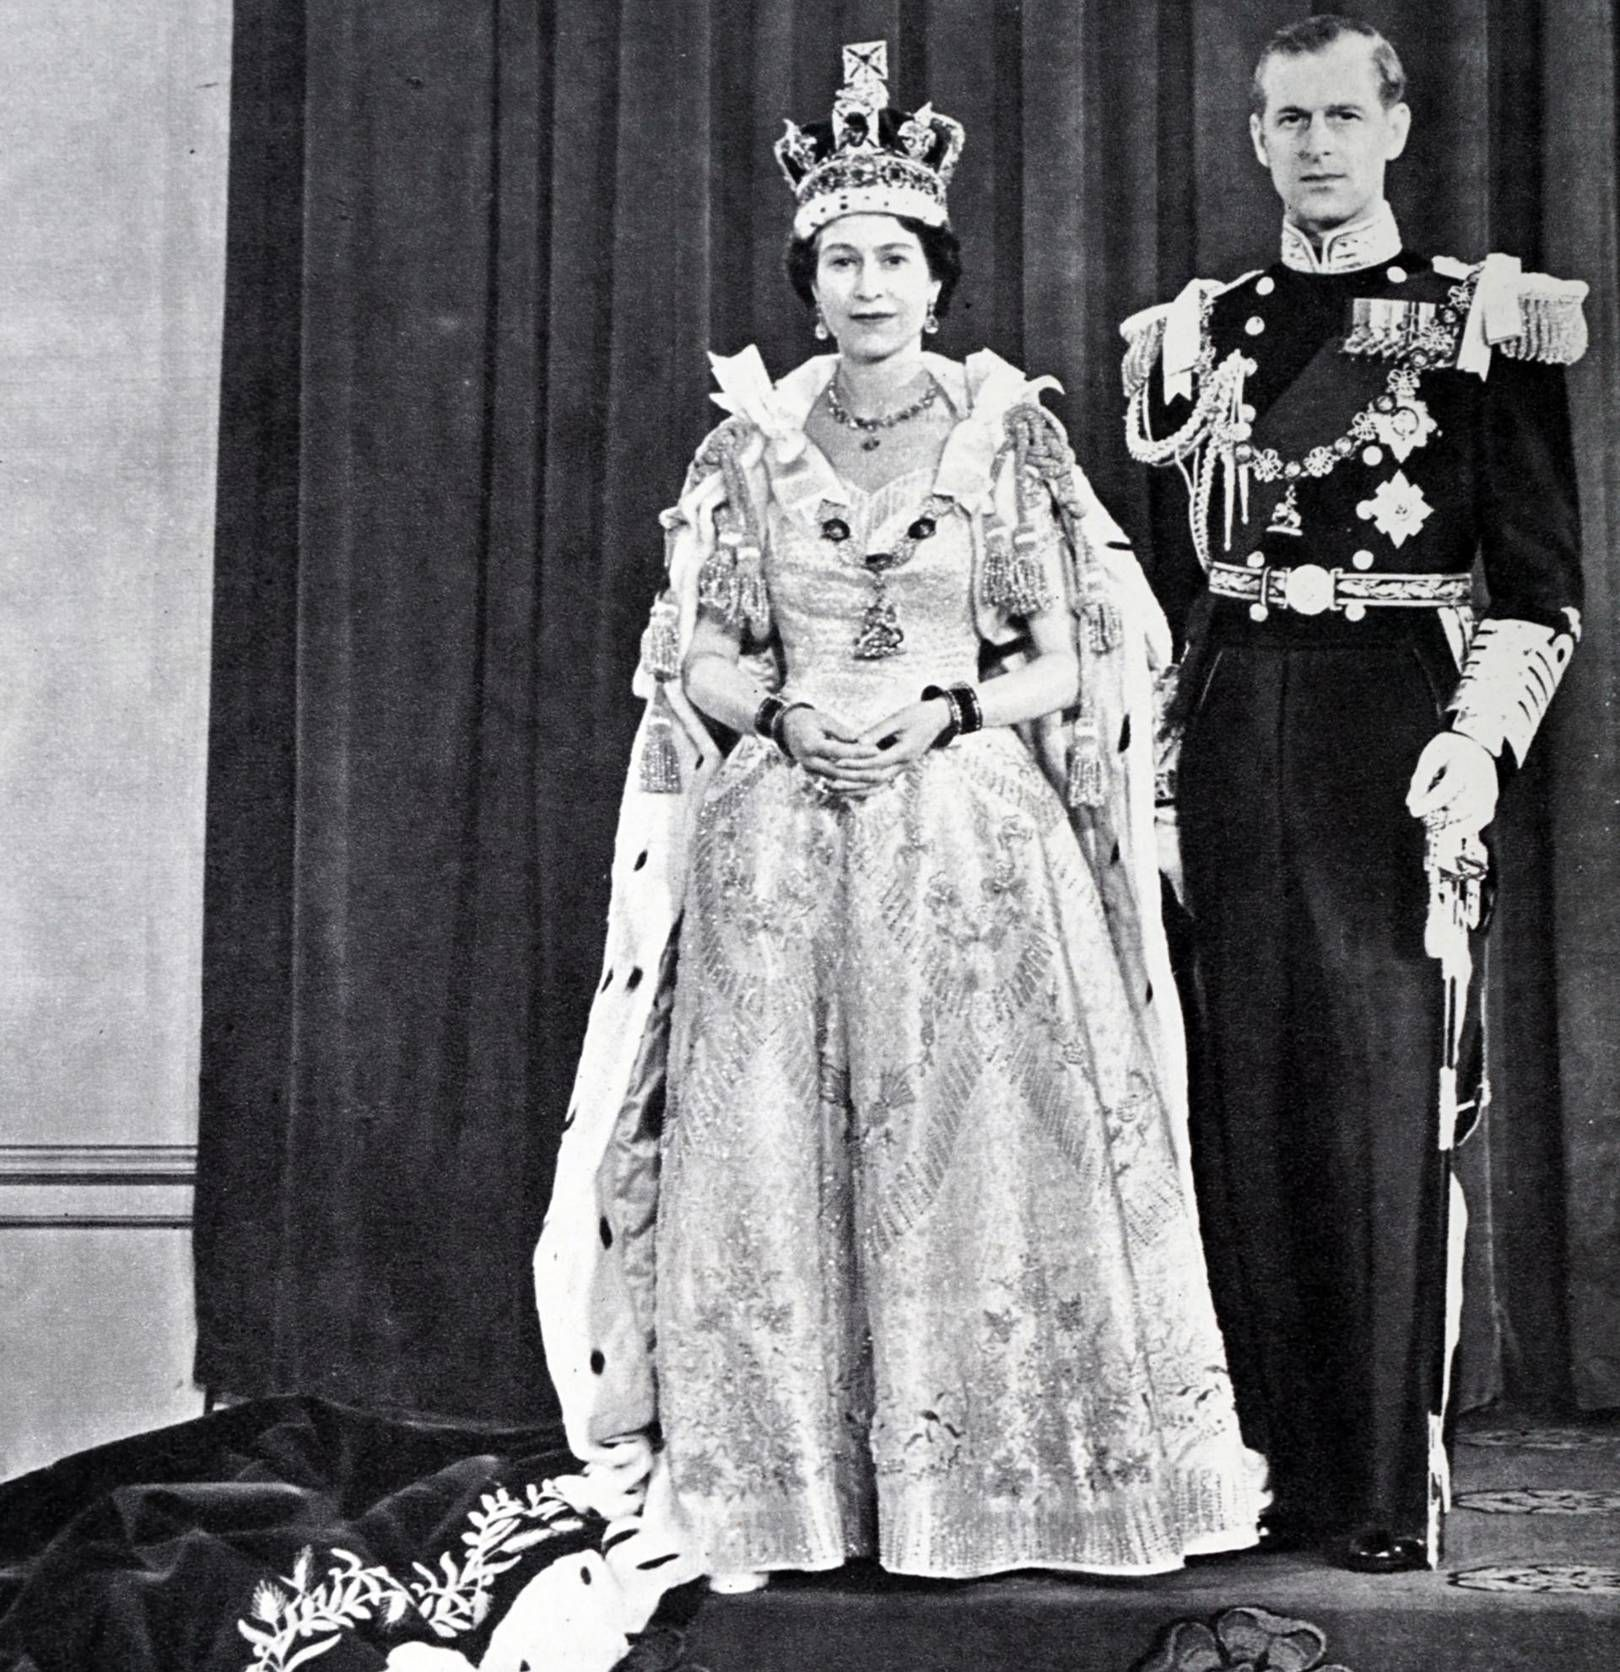 The Queen's Coronation gown had its own suite on the royal